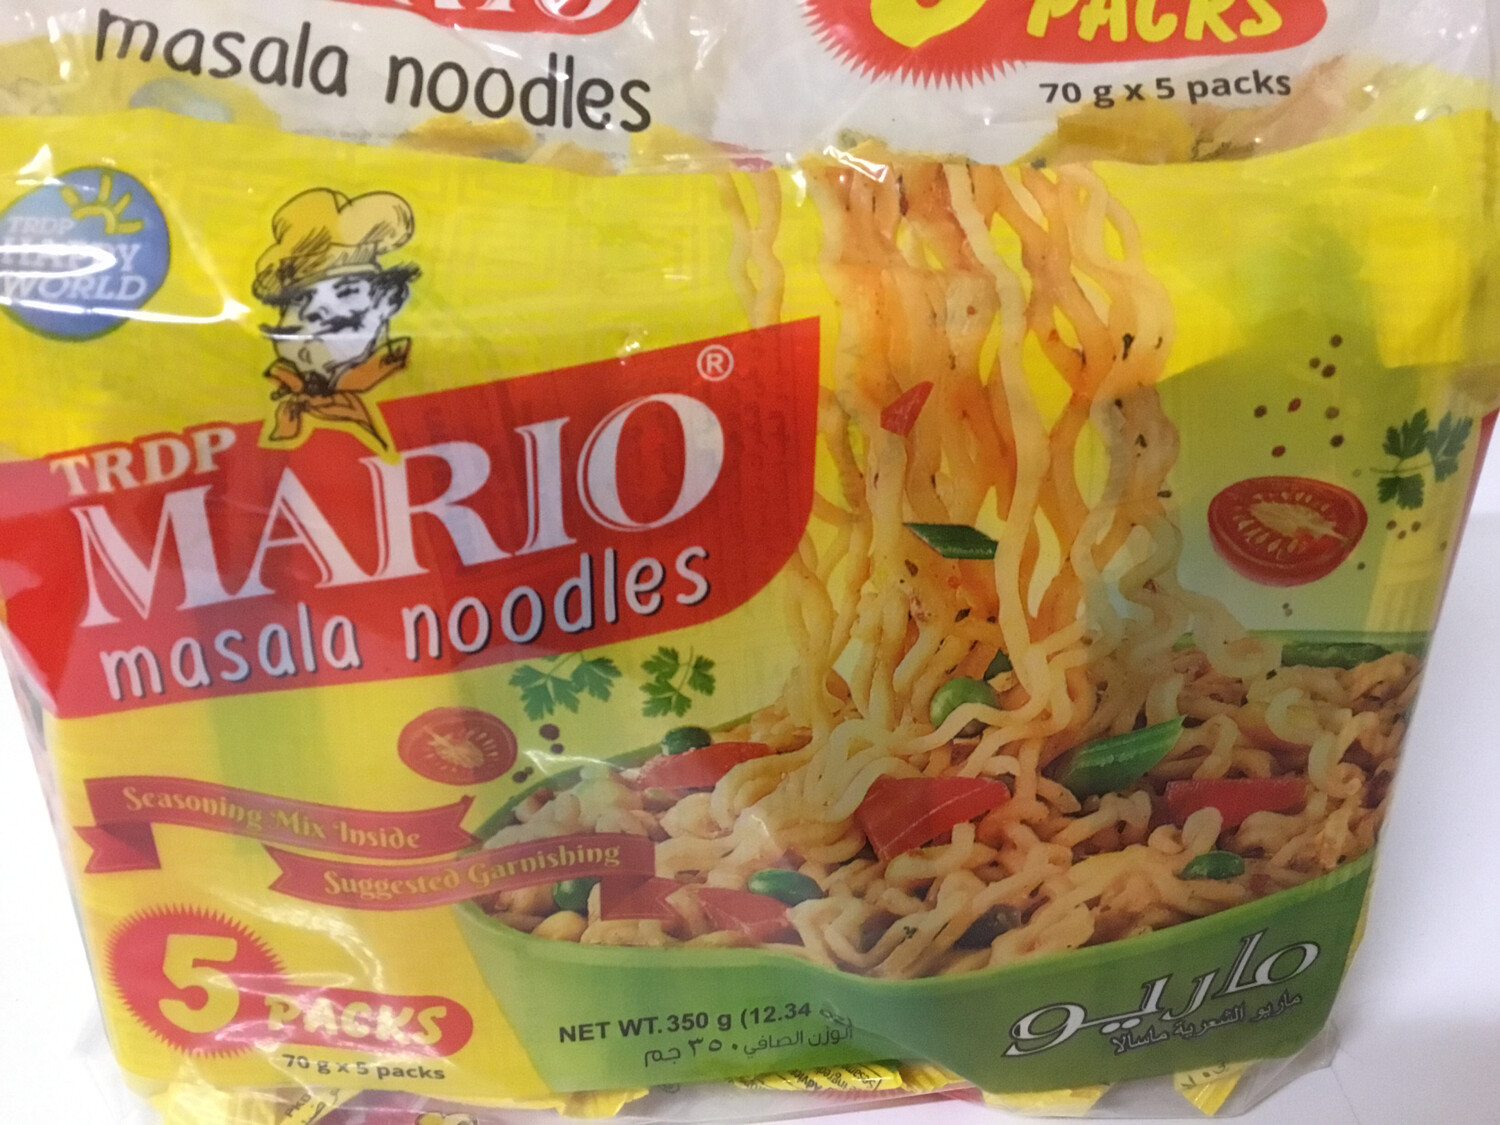 MARIO MASALA NOODLES (70 G*5 PACKS)